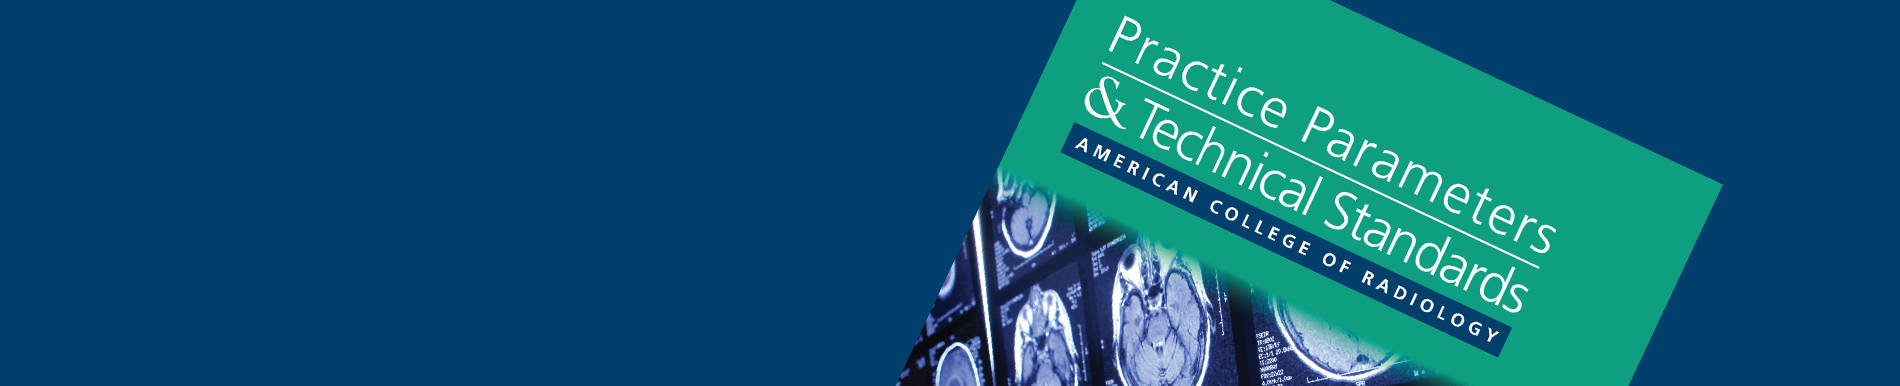 Home | American College of Radiology